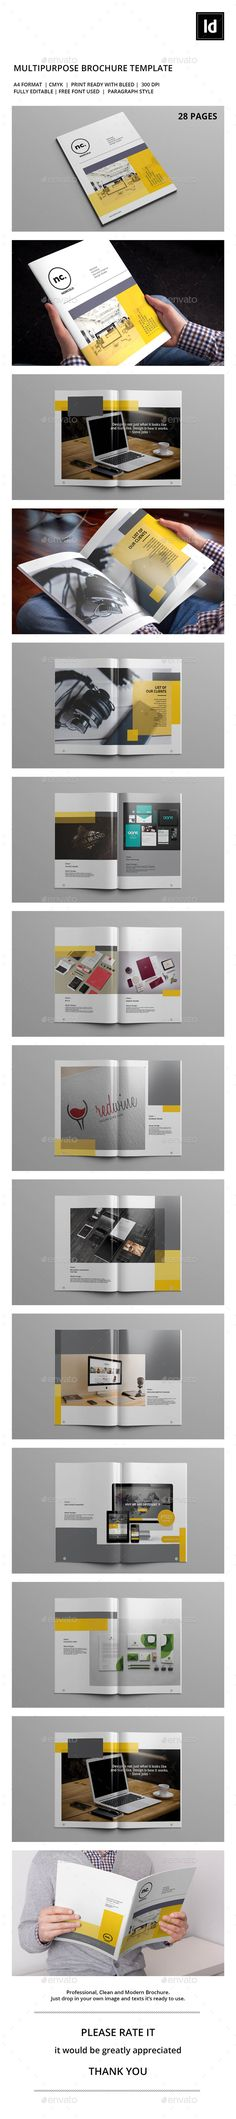 Norcold Portfolio Brochure Template InDesign INDD. Download here: http://graphicriver.net/item/norcold-portfolio-template/15325363?ref=ksioks